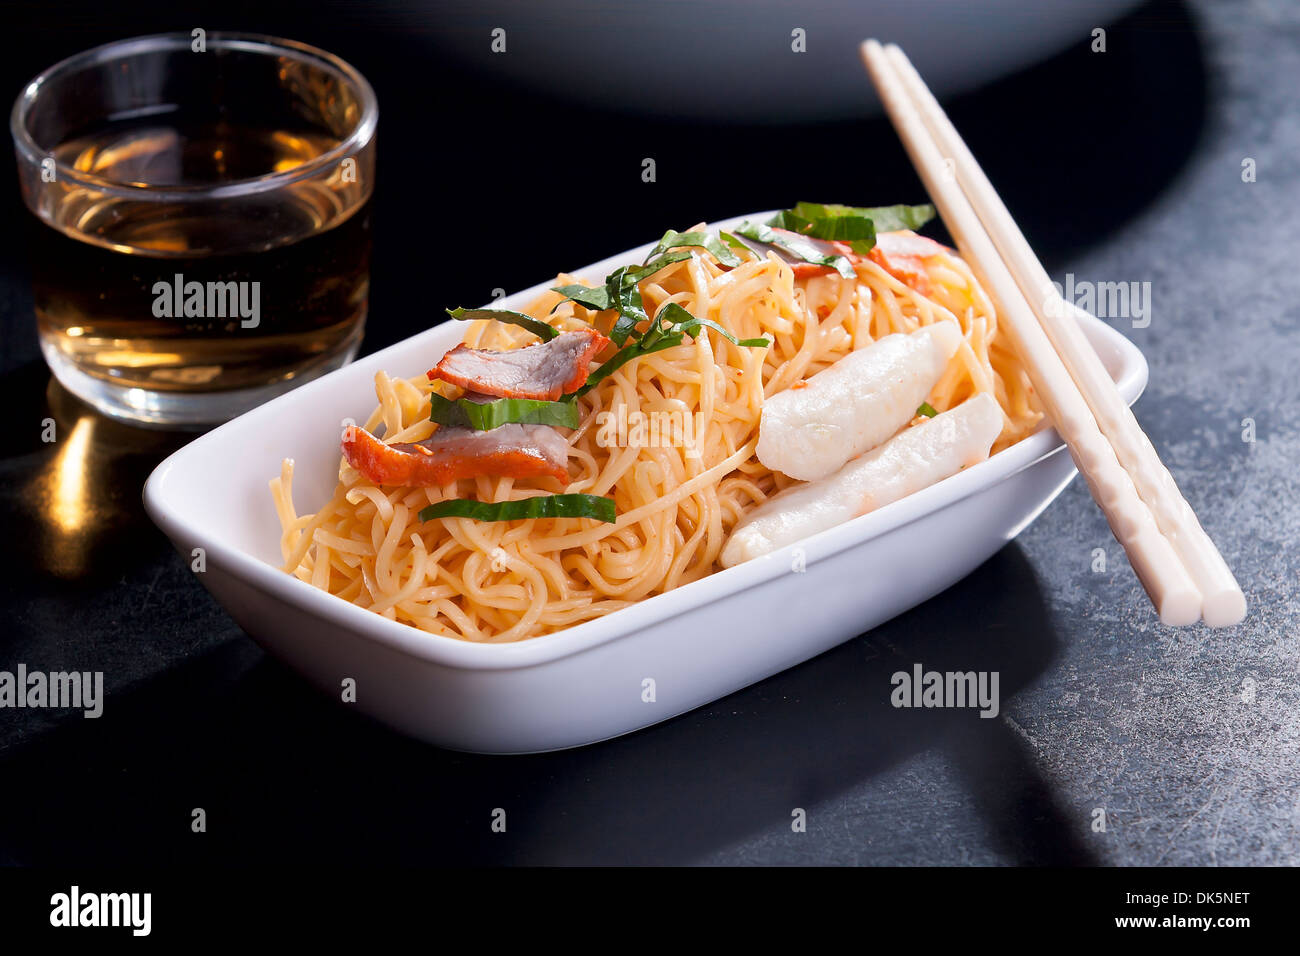 Stir-Fried Chinese Egg Noodles Stock Photo